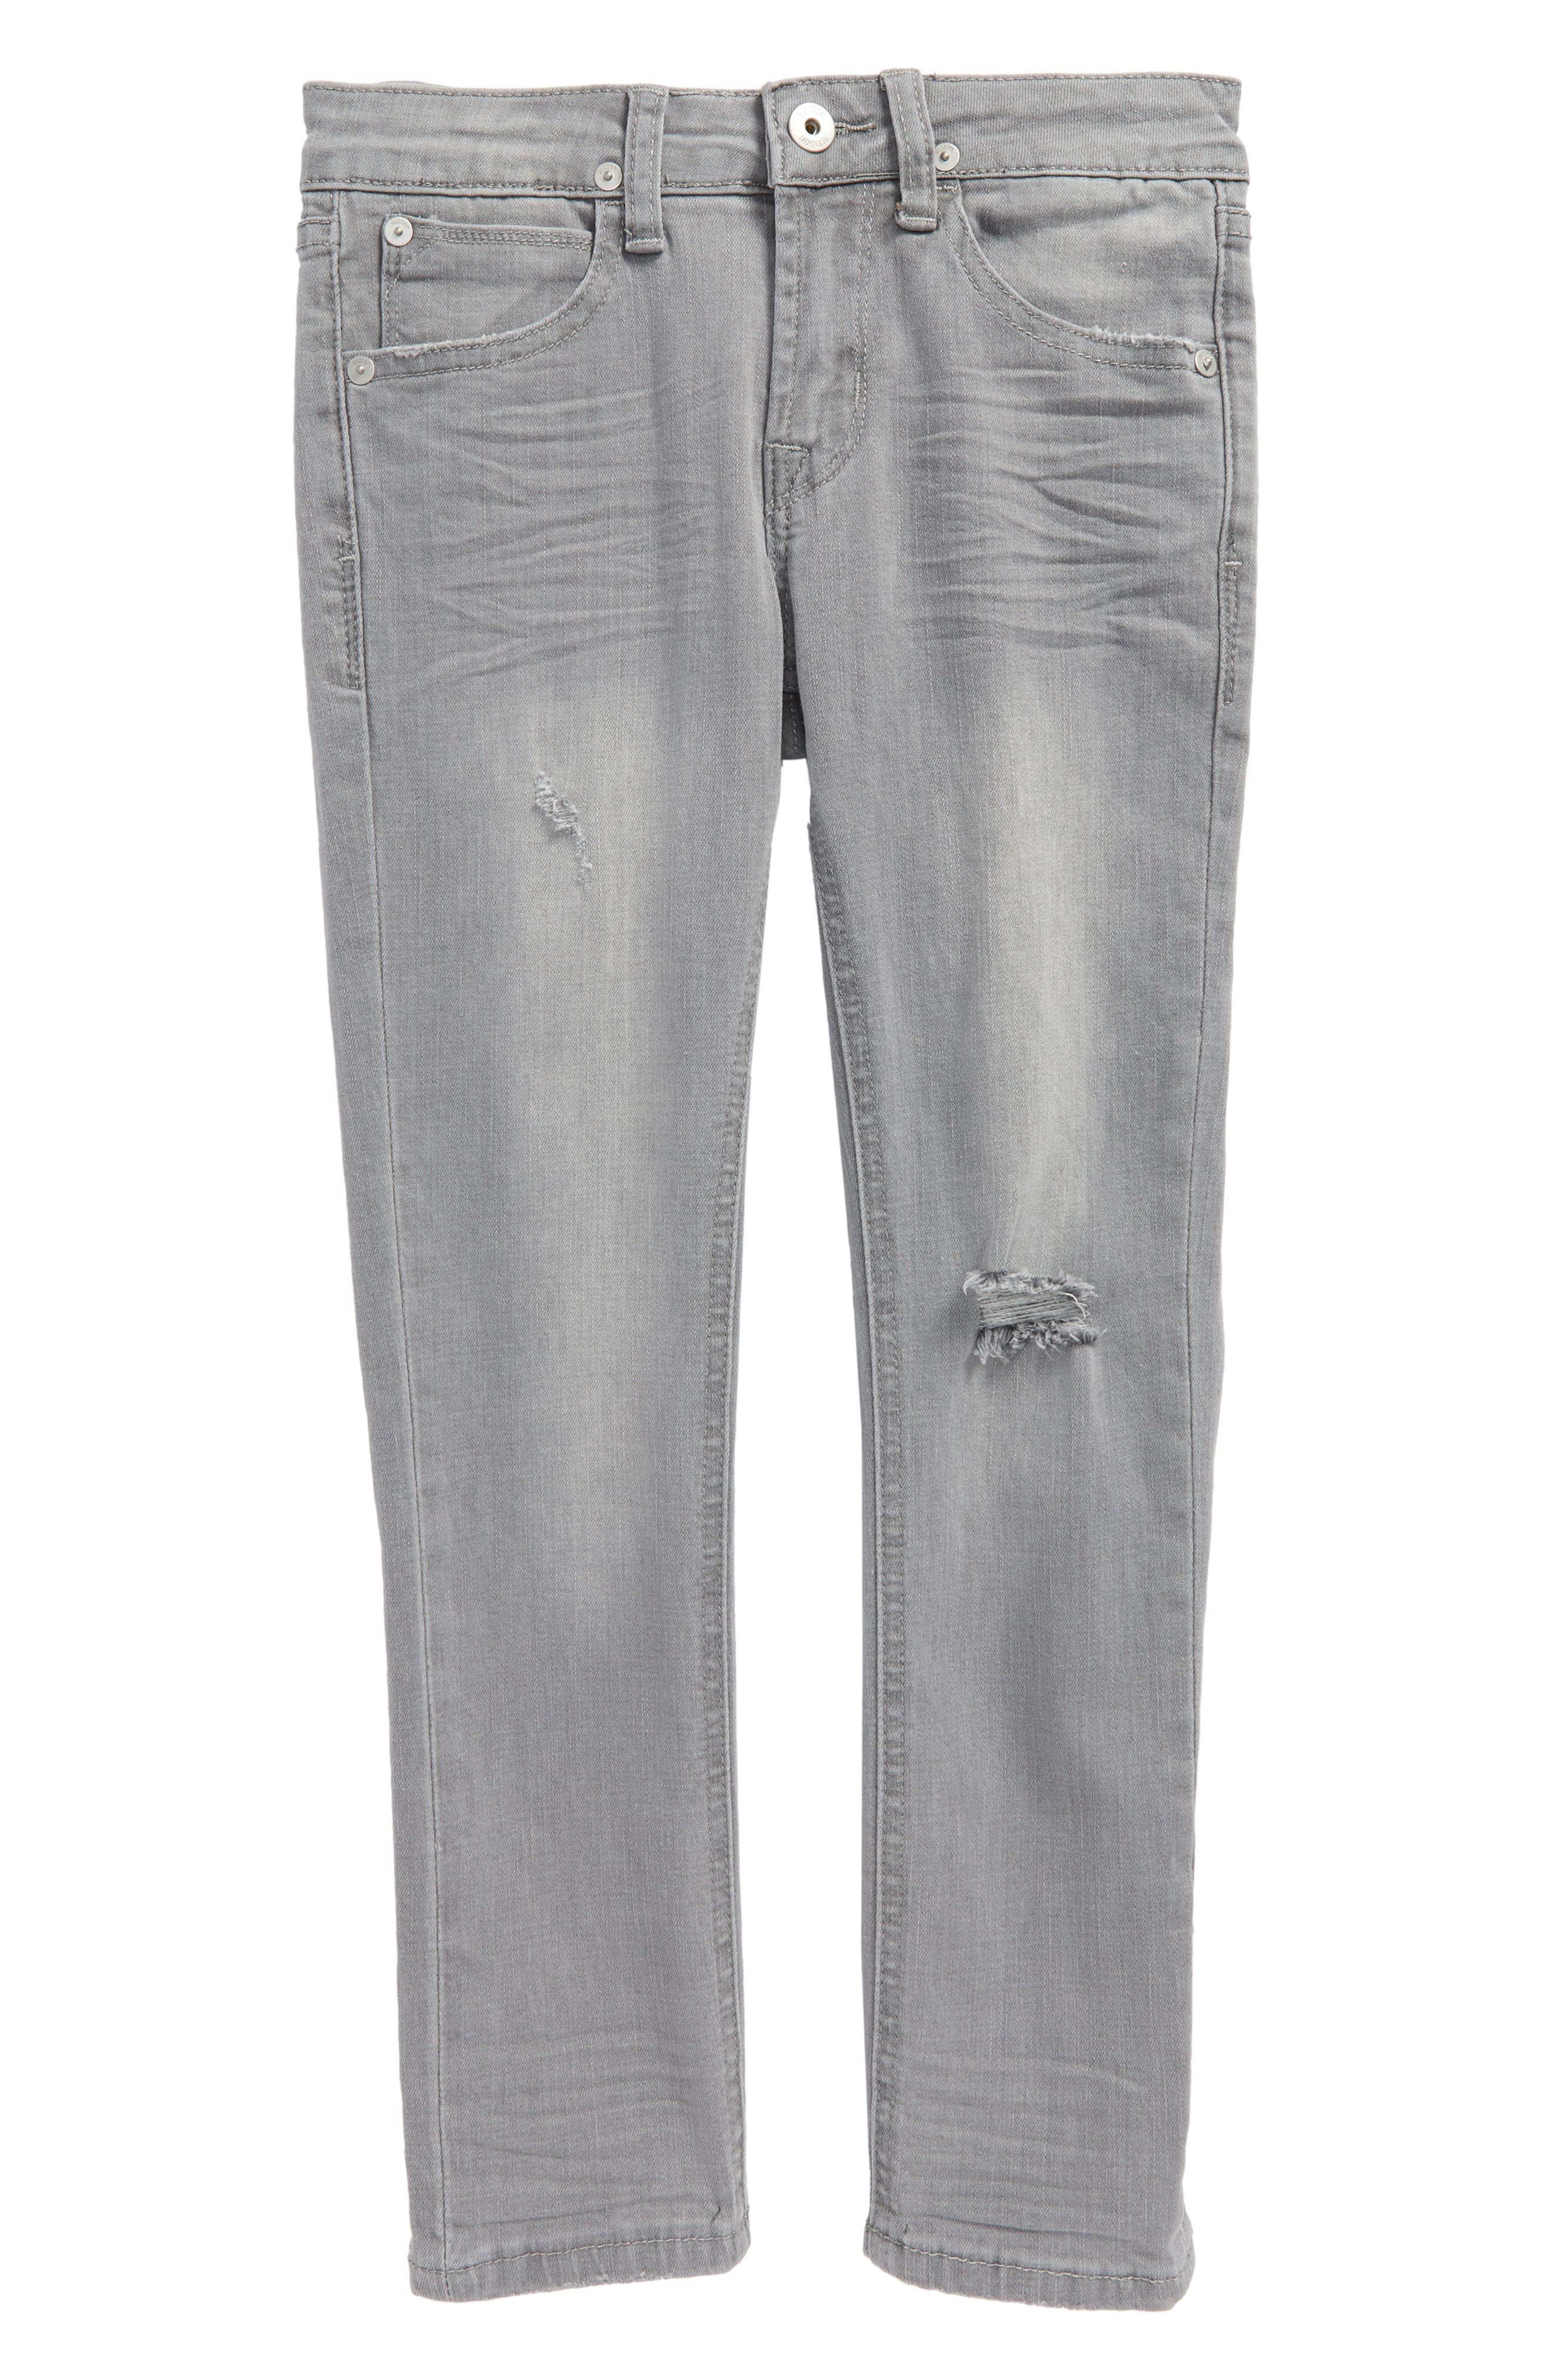 Jude Slim Fit Skinny Jeans,                             Main thumbnail 1, color,                             Ice Grey